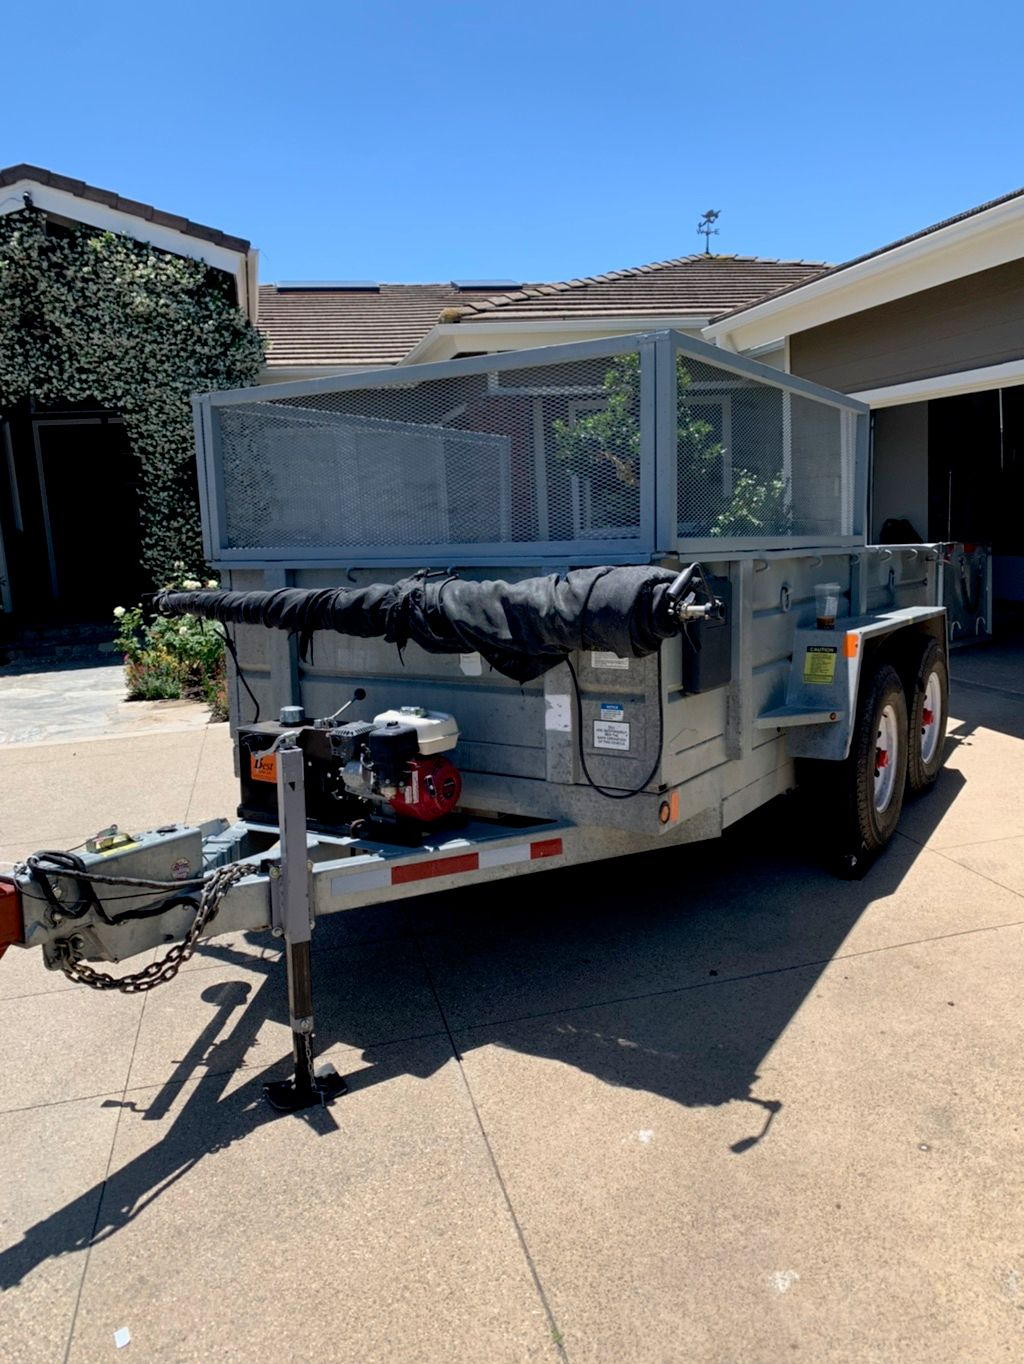 Daily Junk Removal & Dumpster Rentals